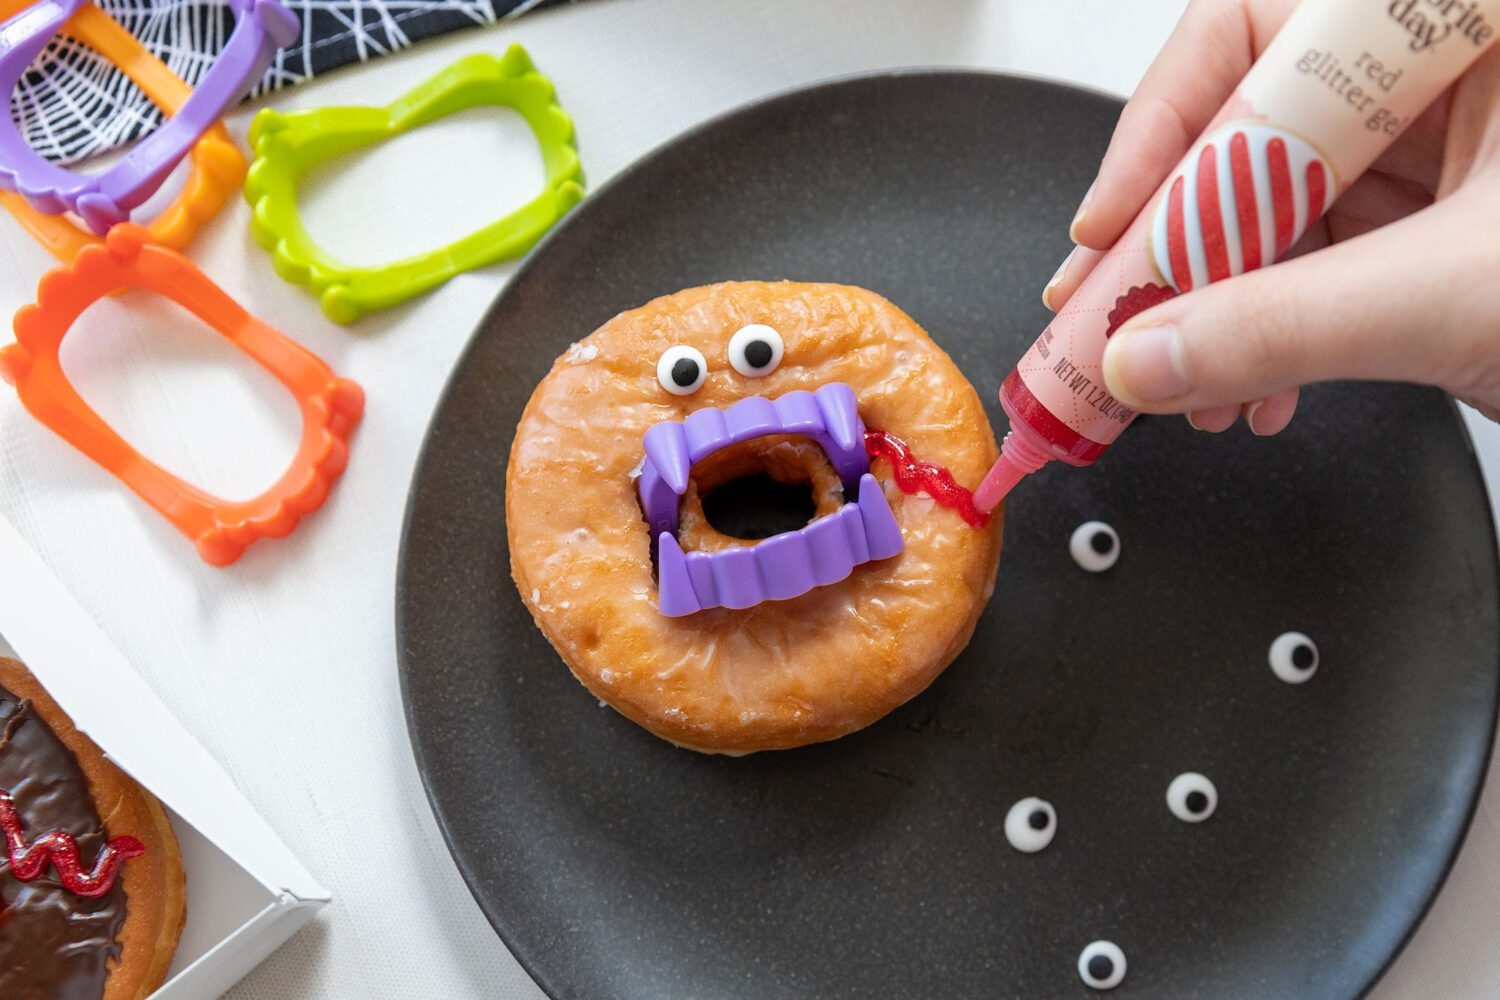 placing red gel on a donut to look like blood